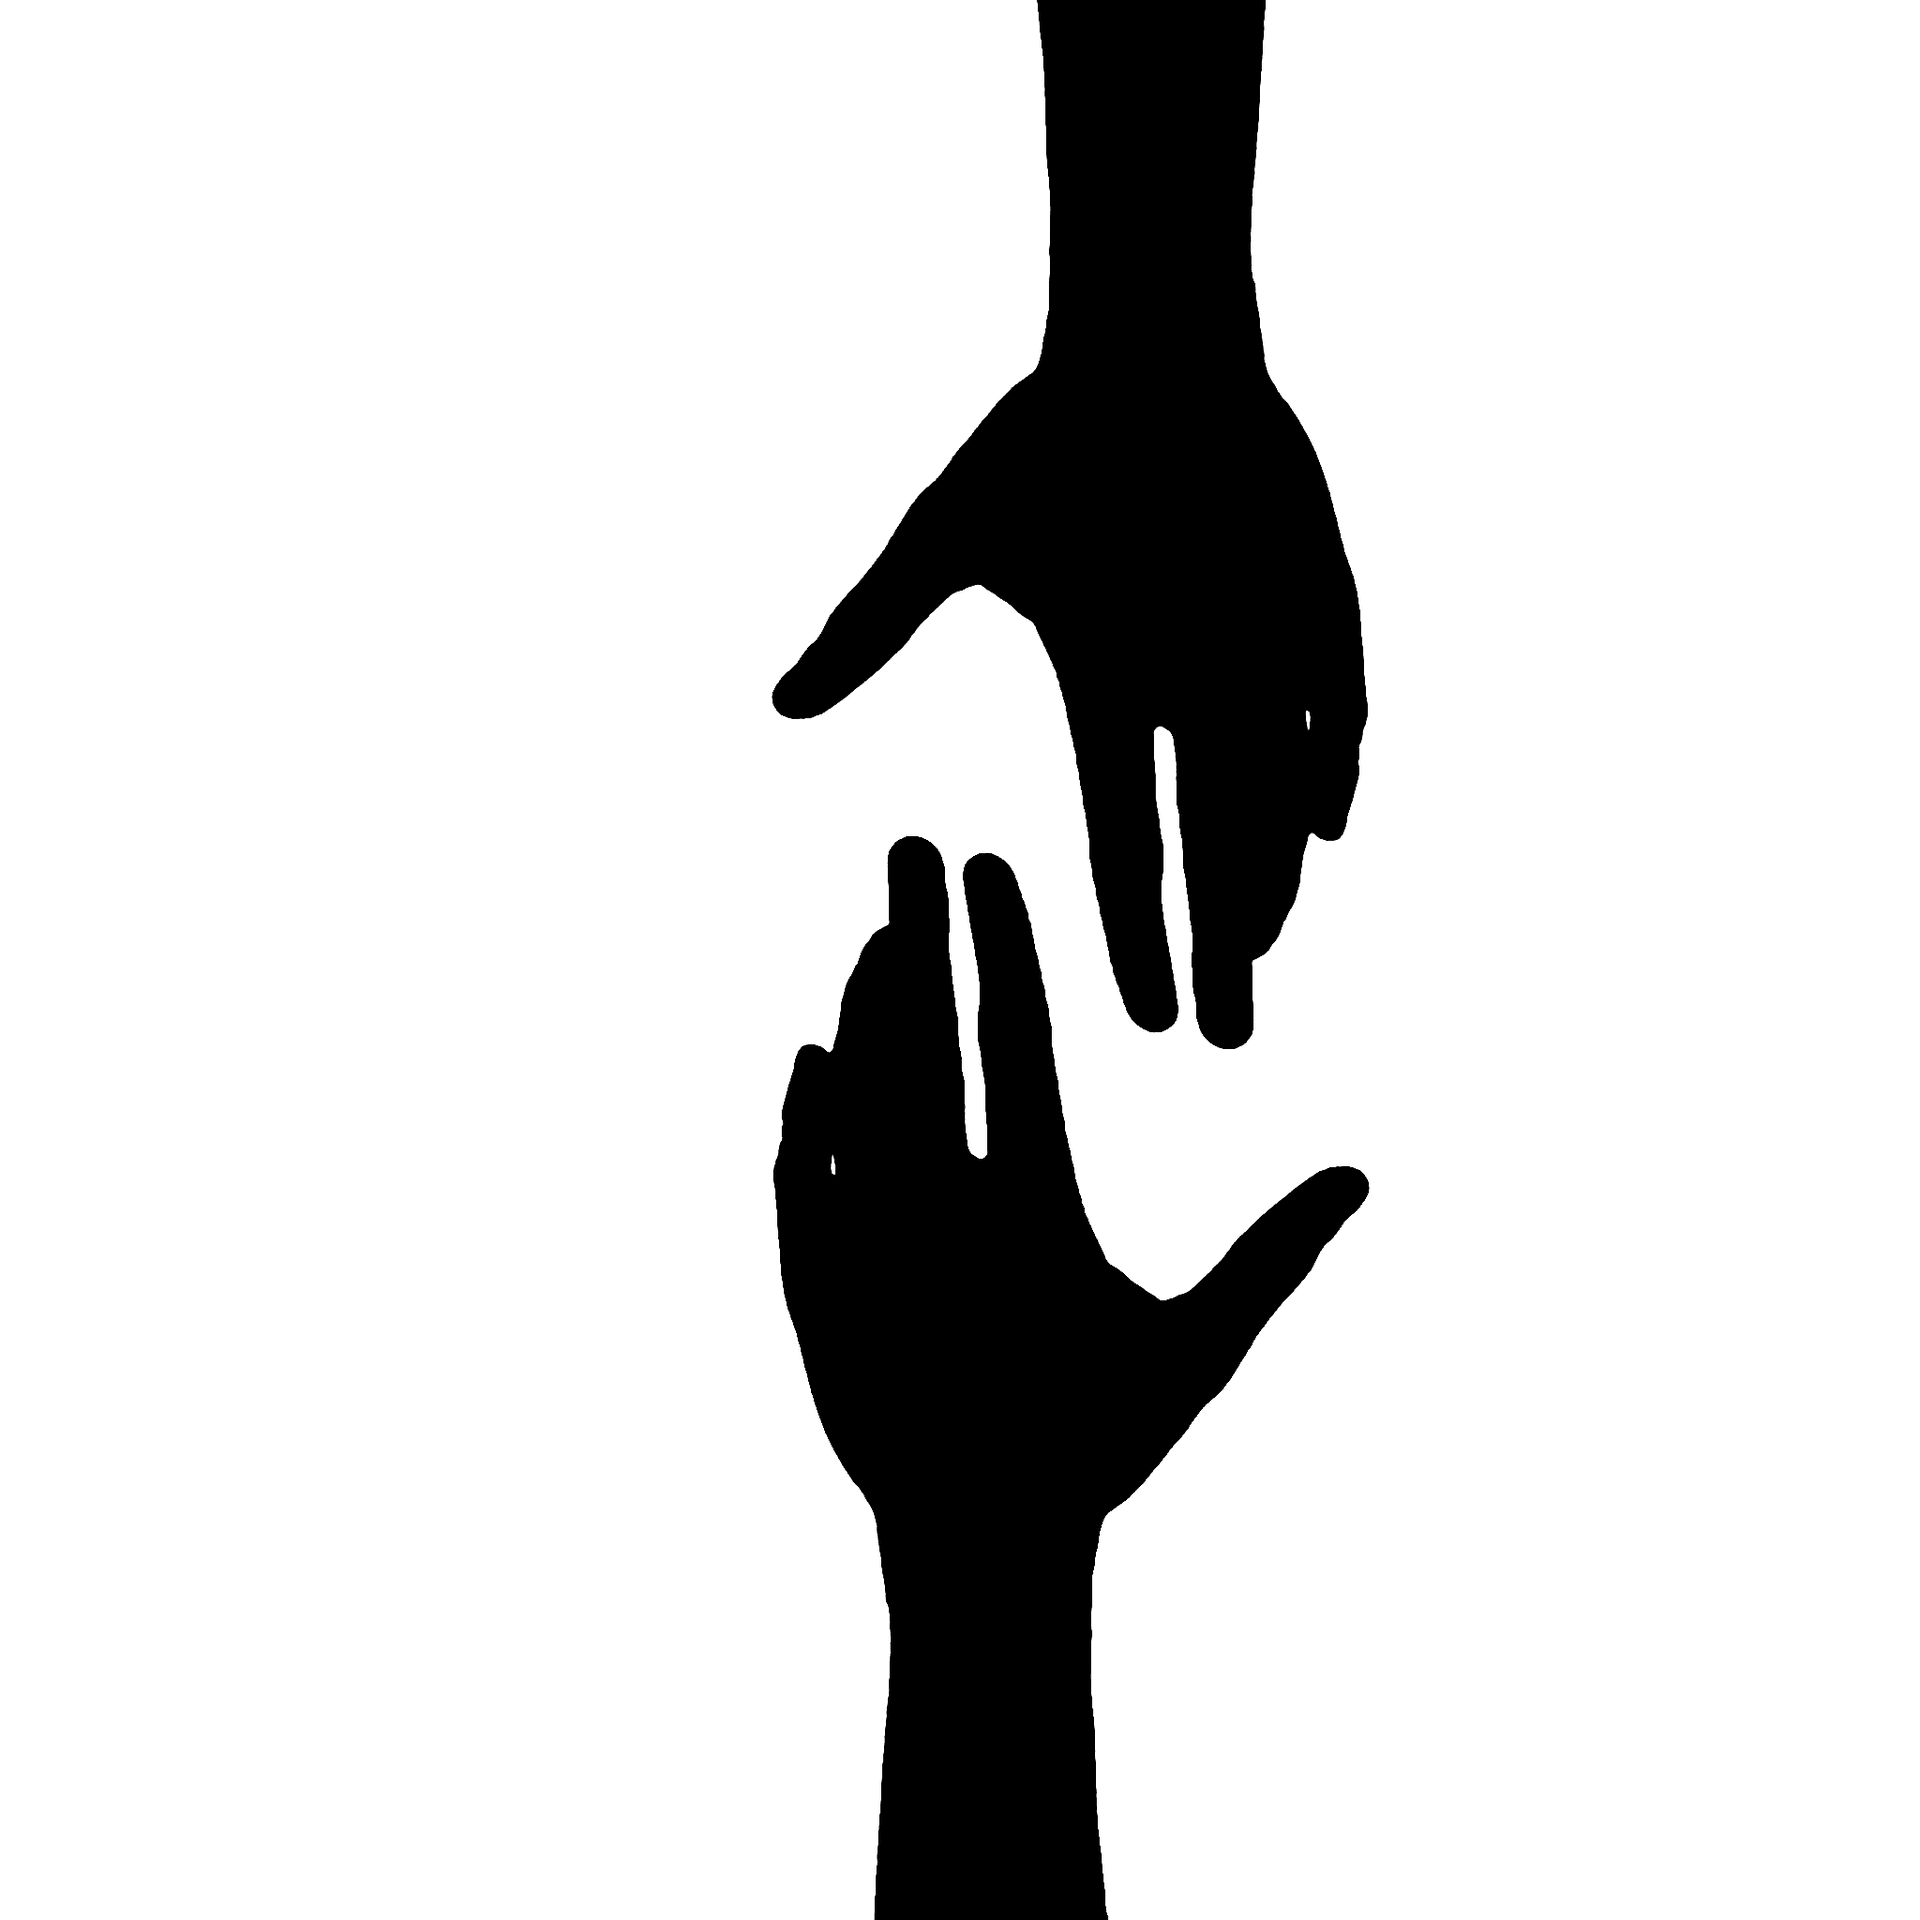 Helping Hands (PNG)